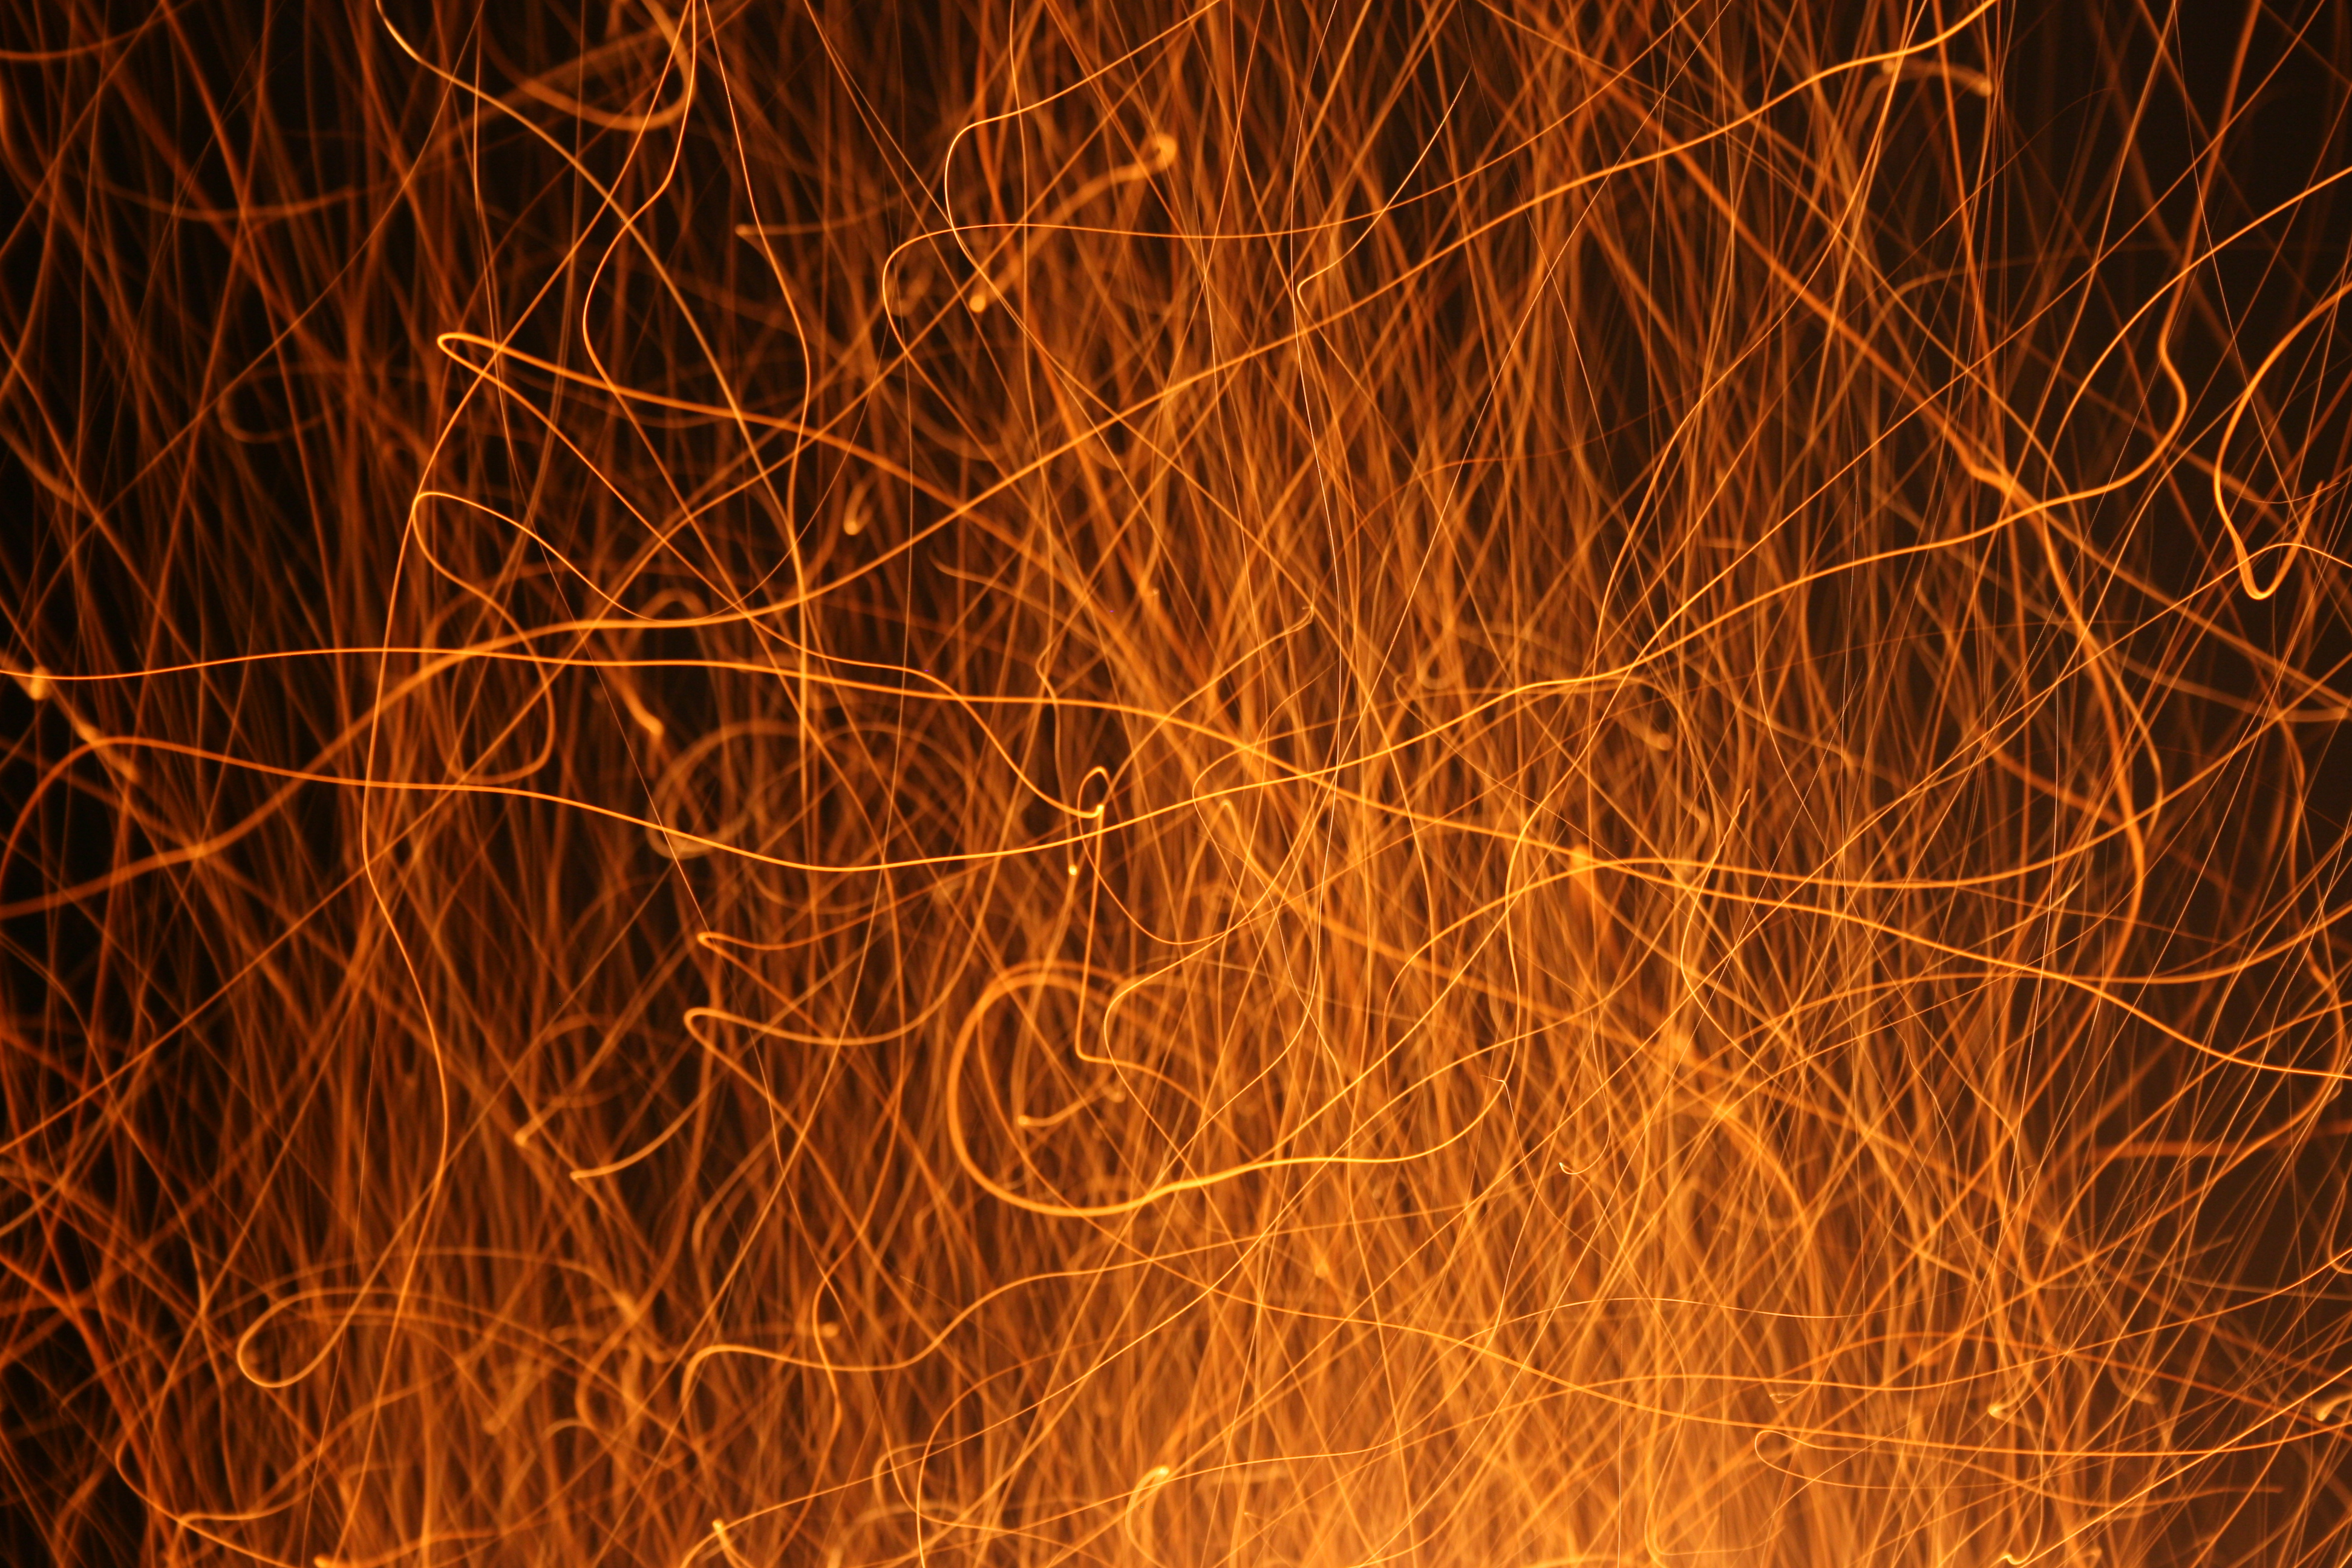 Photo Stock Images File Stock fire JPG